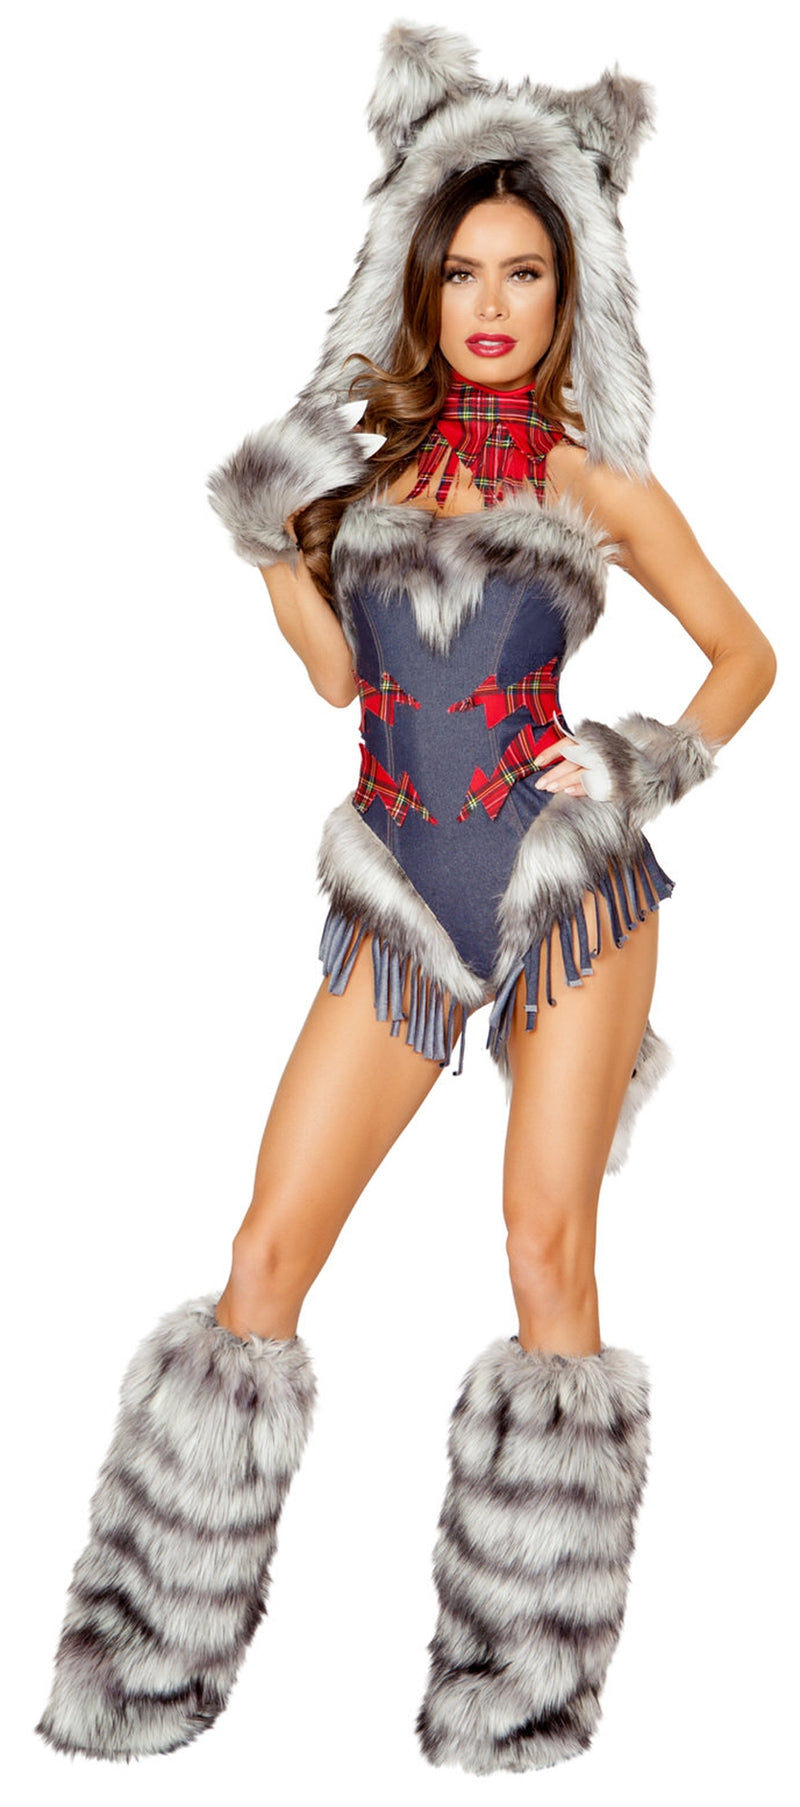 RM-4805 Wolf costume